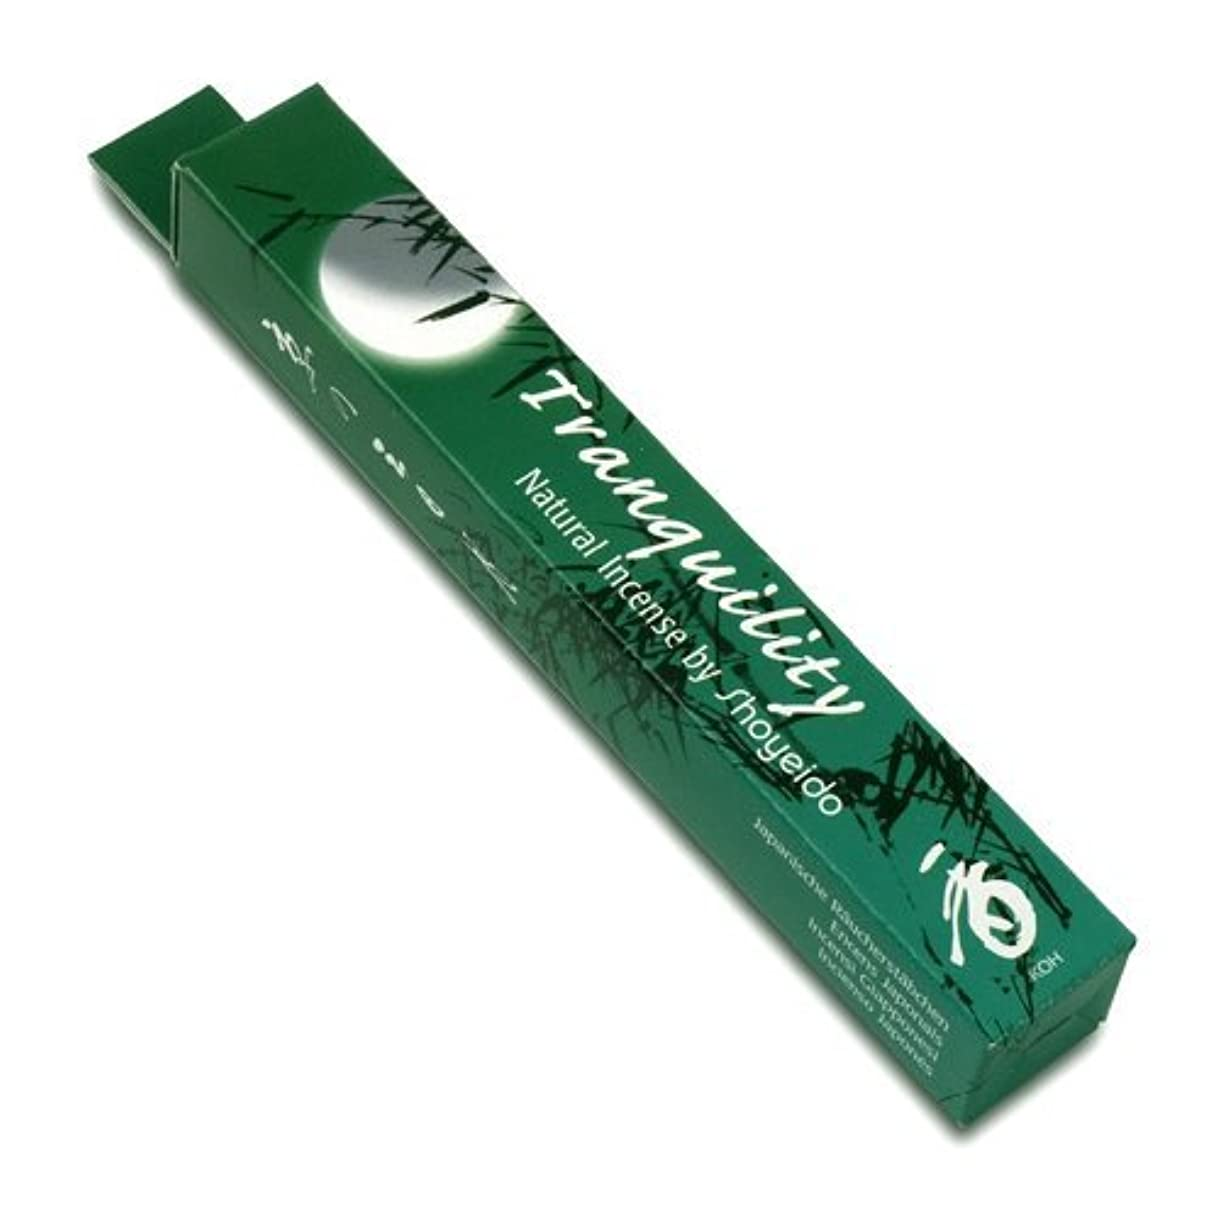 フェッチカセット第三Shoyeido's Tranquility Incense 40 sticks - Kyoto Moon Series [並行輸入品]